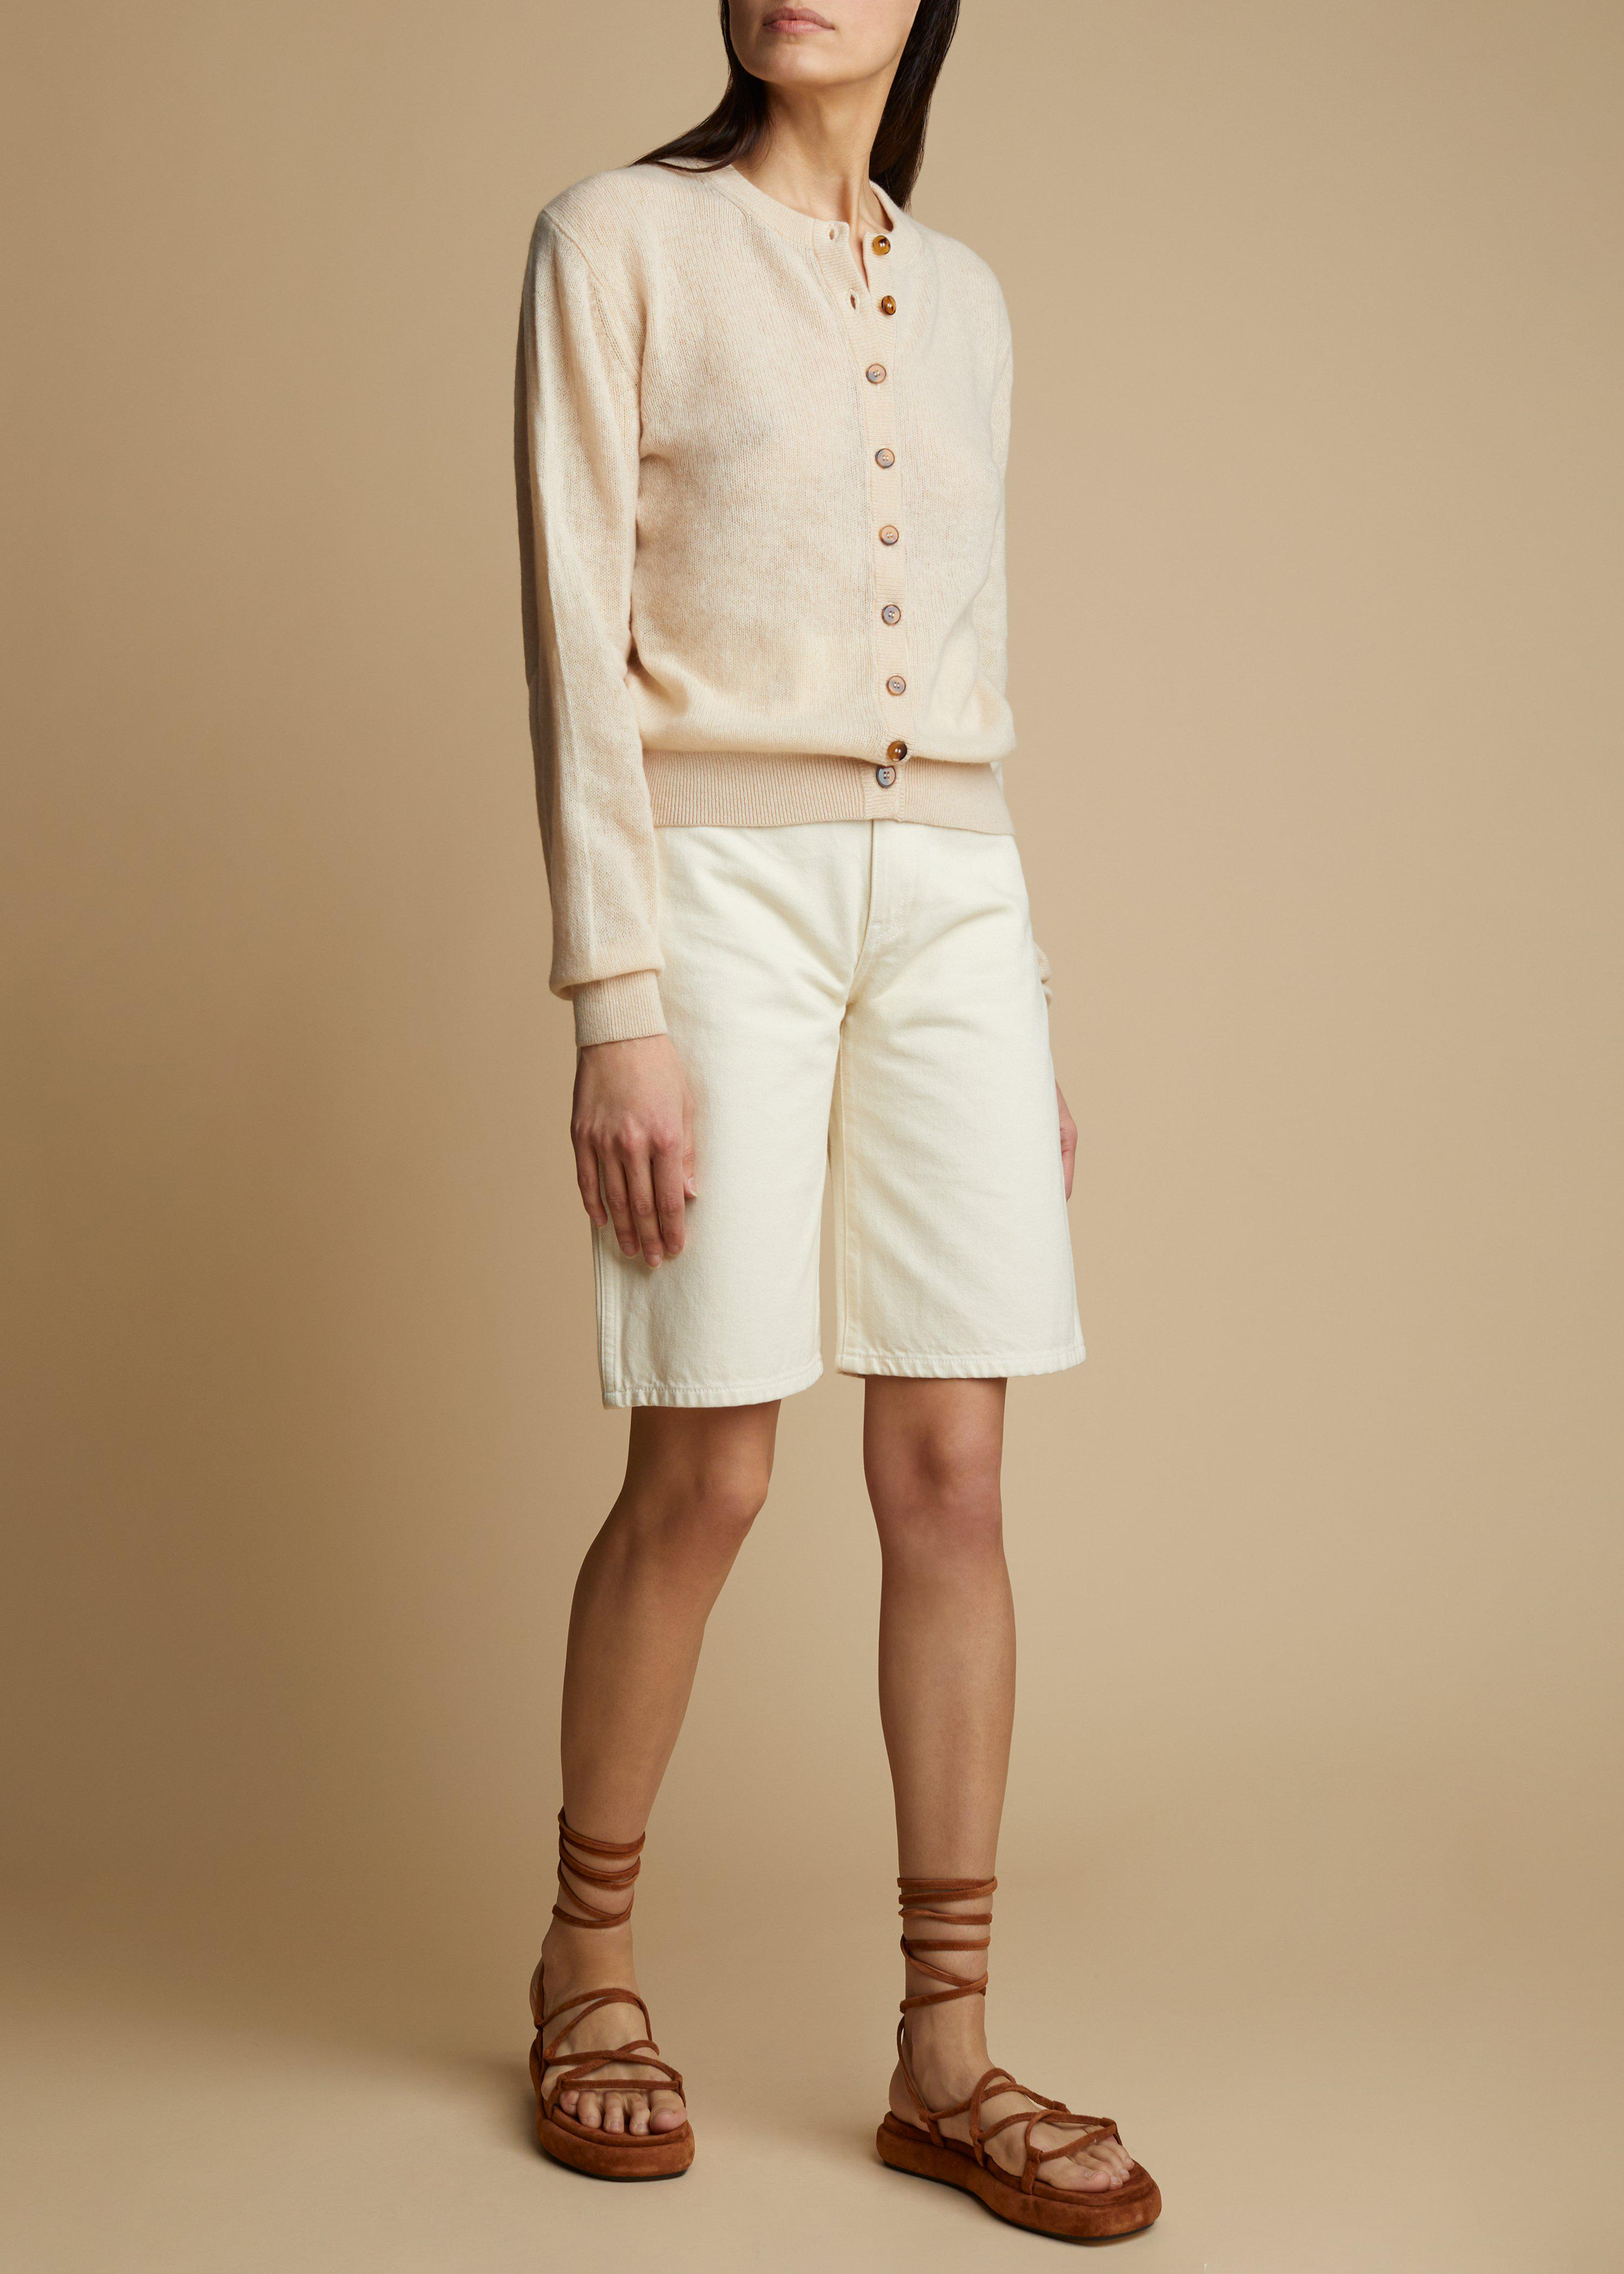 The Mitch Short in Ivory